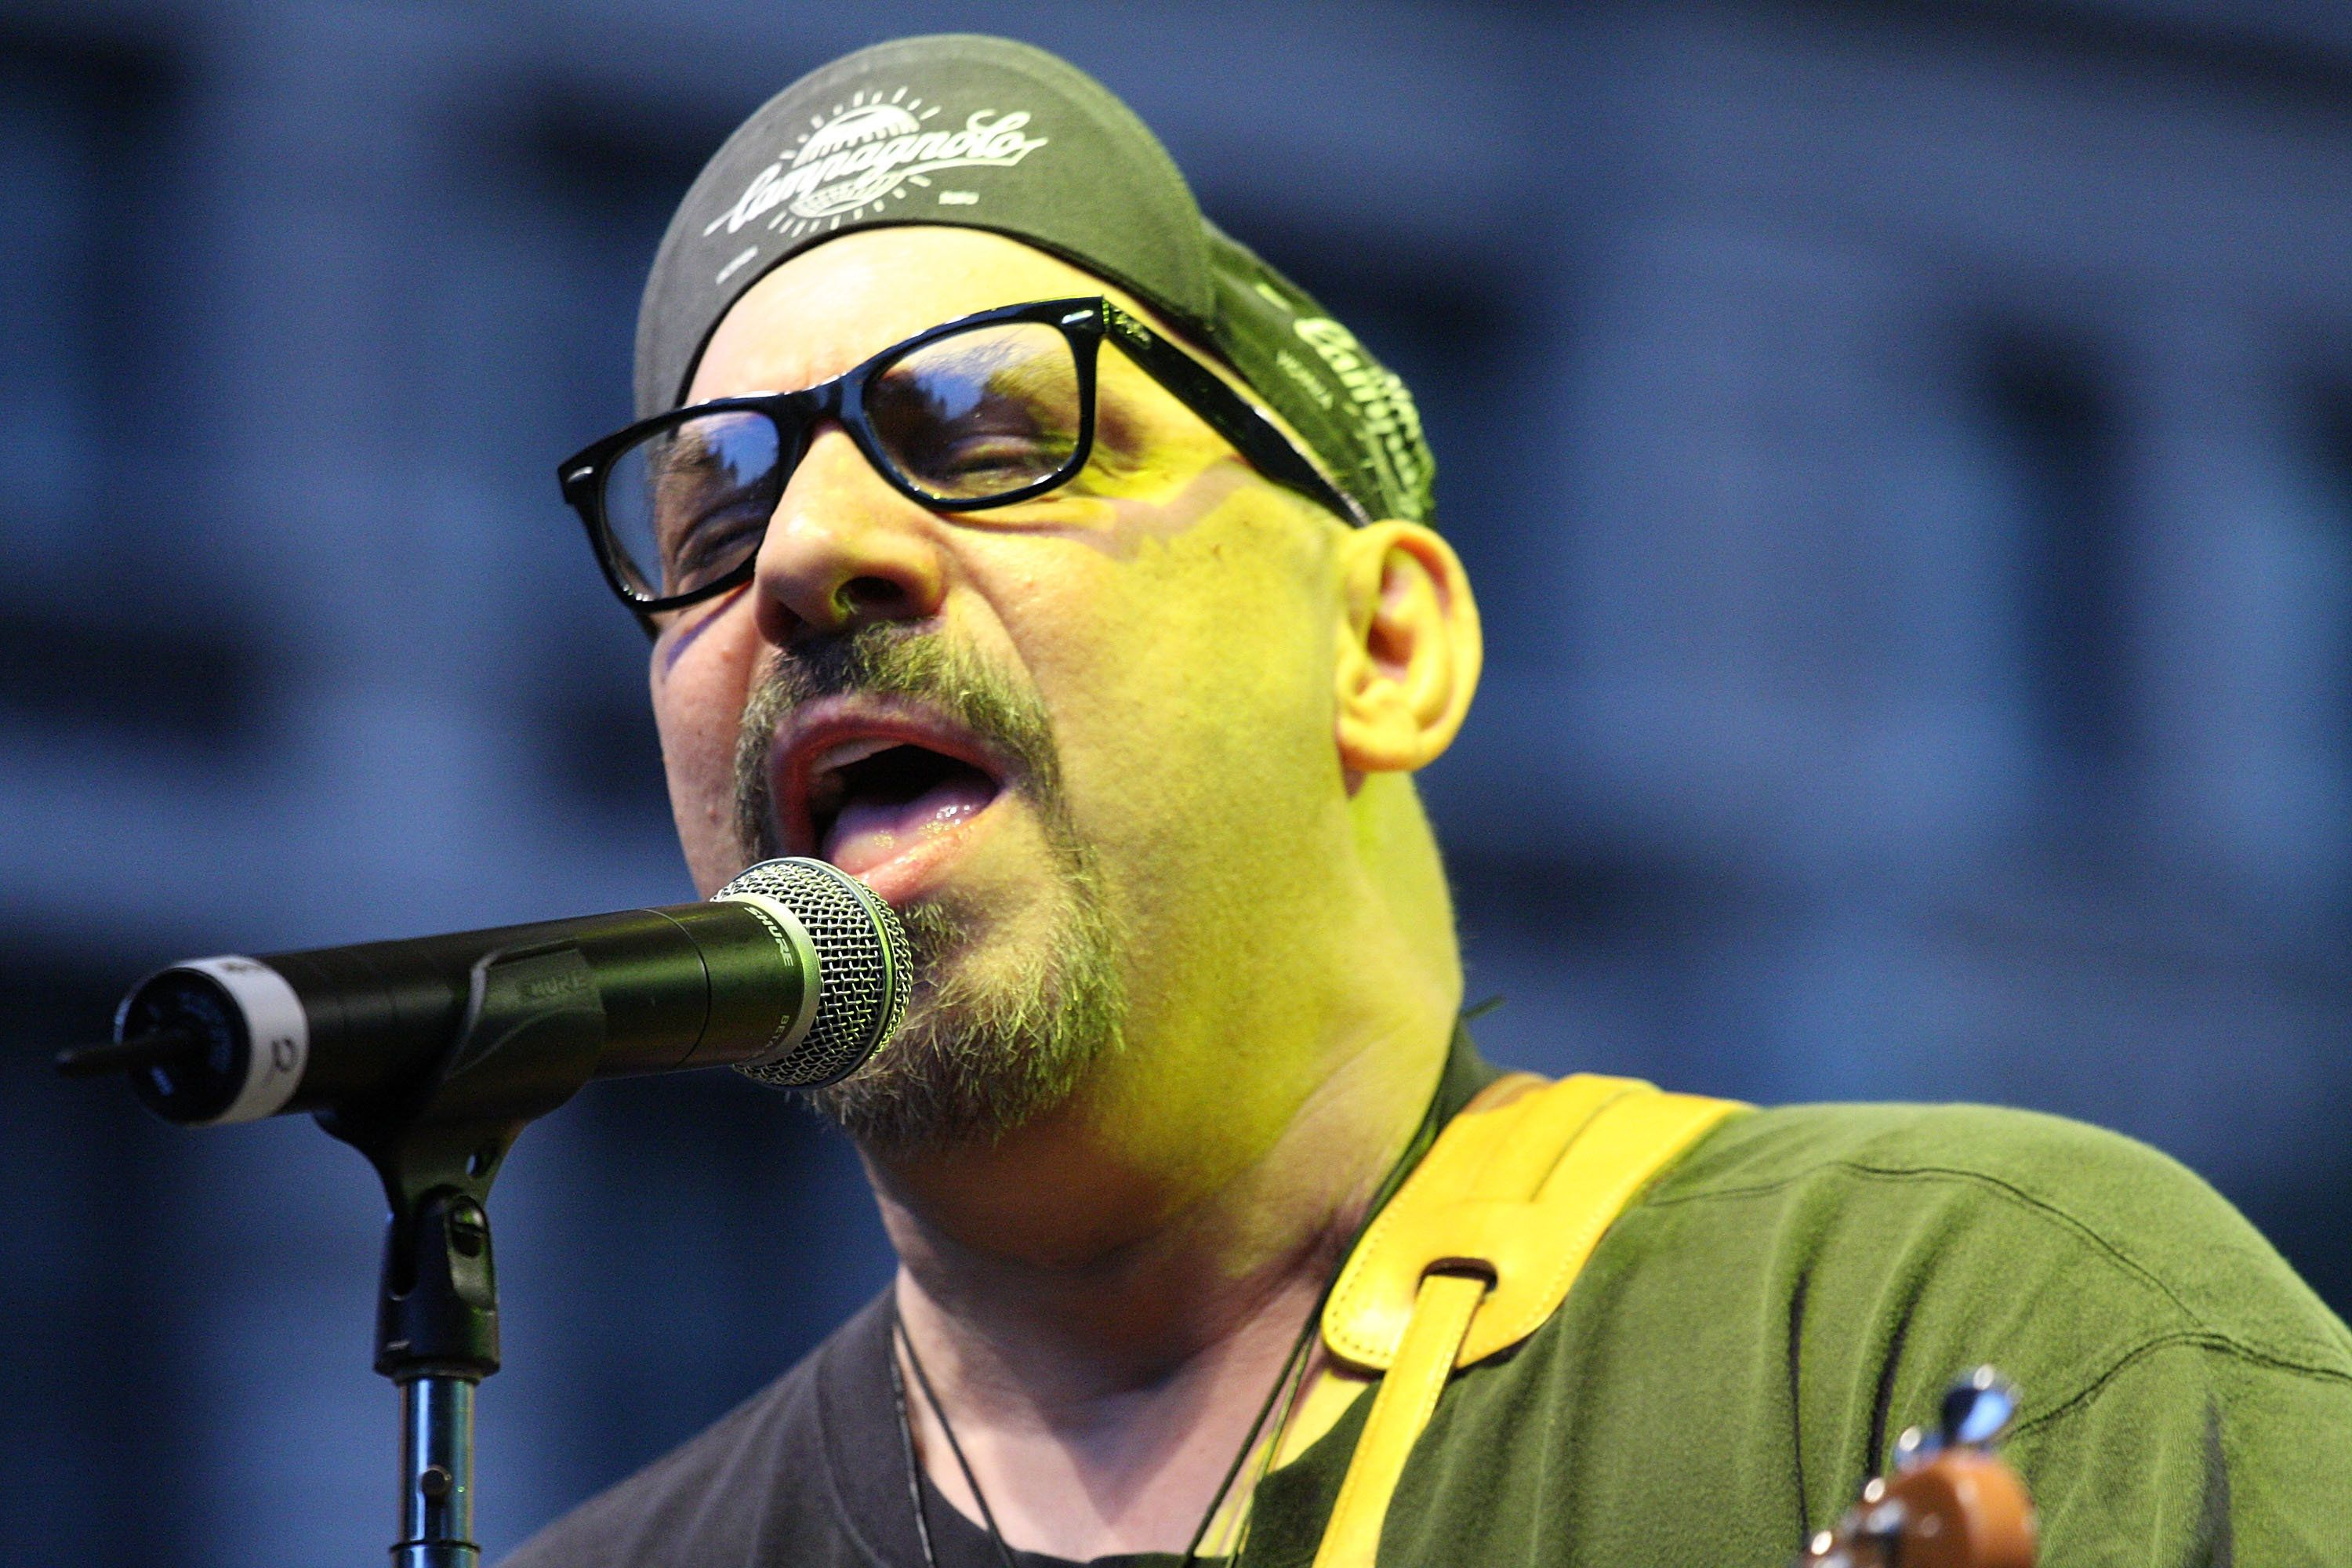 NEW YORK - AUGUST 27: Musician Pat Dinizio of the Smithereens performs at the 2009 J&R MusicFest at City Hall Park on August 27, 2009 in New York City. (Photo by Ben Hider/Getty Images)